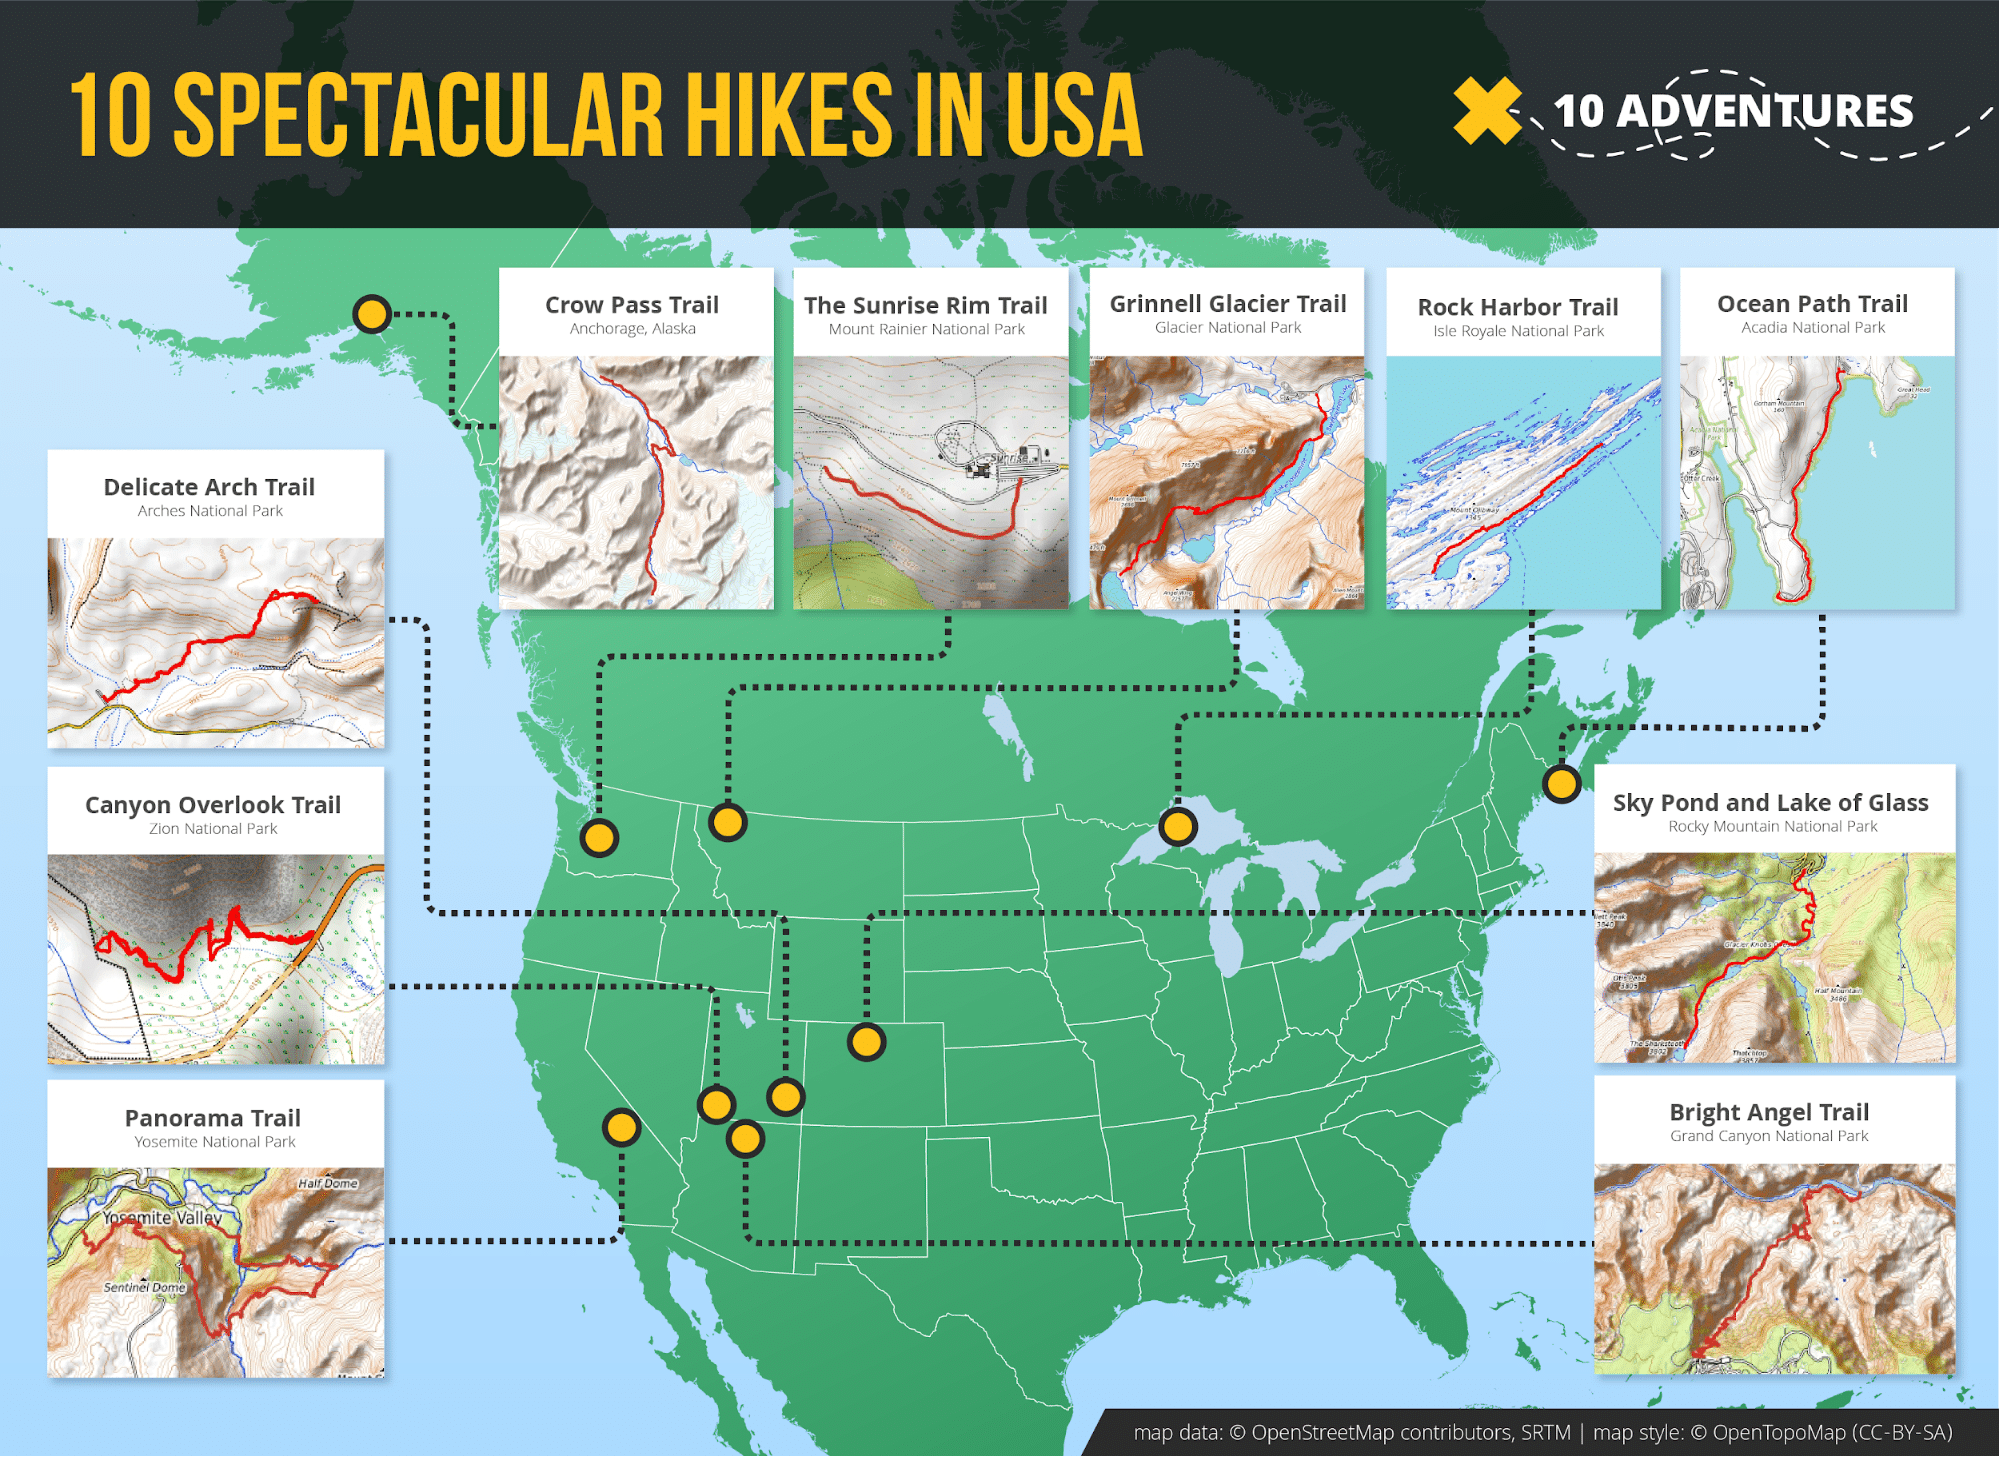 Best hikes in USA